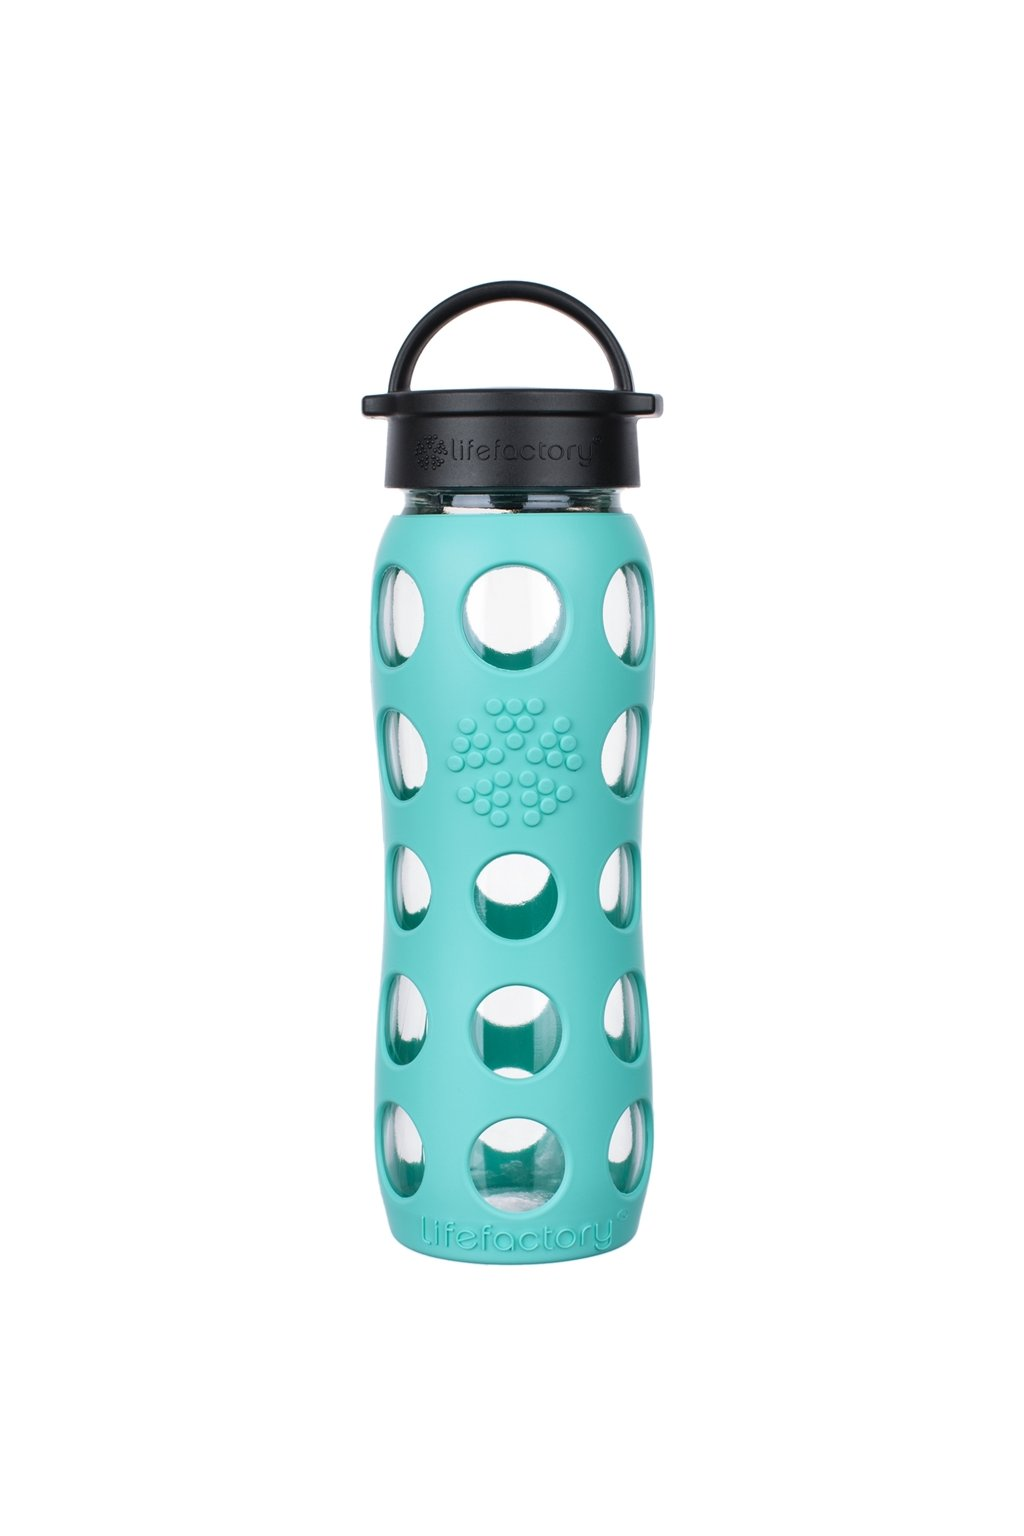 Sklenena lahev na vodu Lifefactory 650 ml Sea green